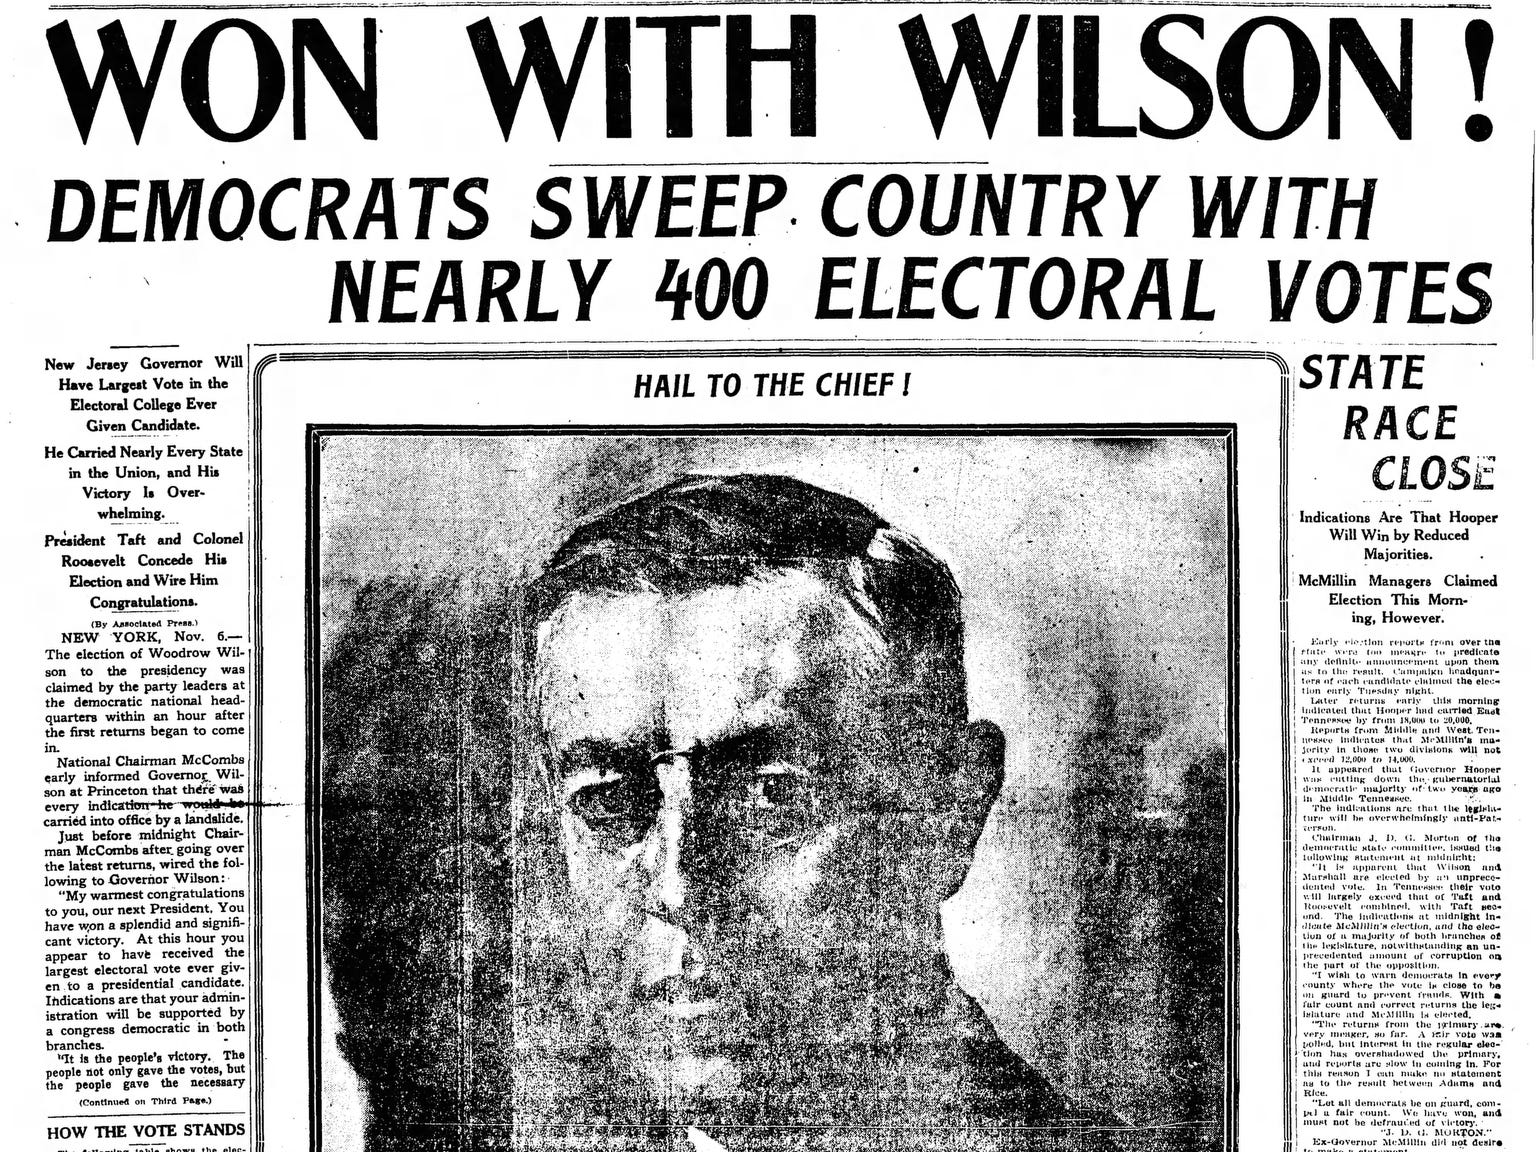 The front page of the Nov. 6, 1912 of The Tennessean which Woodrow Wilson won the presidential election.